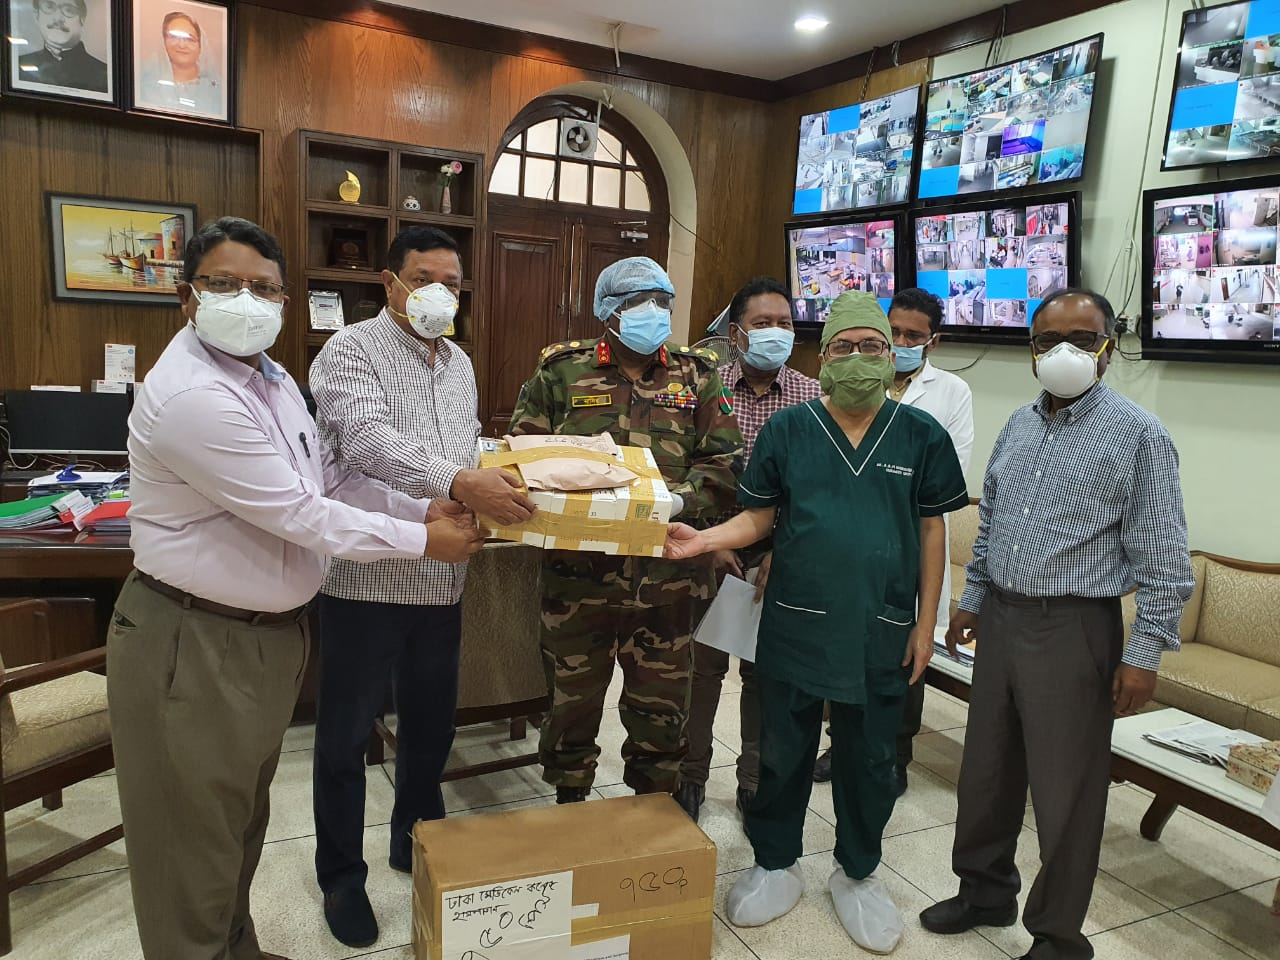 Donation of KN-95 Mask by BCPS to Director, Dhaka Medical College Hospital ( From the left Professor Md. Billal Alam, Councillor & EC Member, BCPS, Professor Khan Abul Kalam Azad, Councillor & EC Member, BCPS, Brig. Gen. Md. Nasir Uddin, Director, Dhaka Medical College Hospital, Professor Abul Bashar Mohammed Khurshid Alam, Honorary Secretary, BCPS, Professor Md. Mujibur Rahman, Councillor & Honorary Controller of Examinations, BCPS)